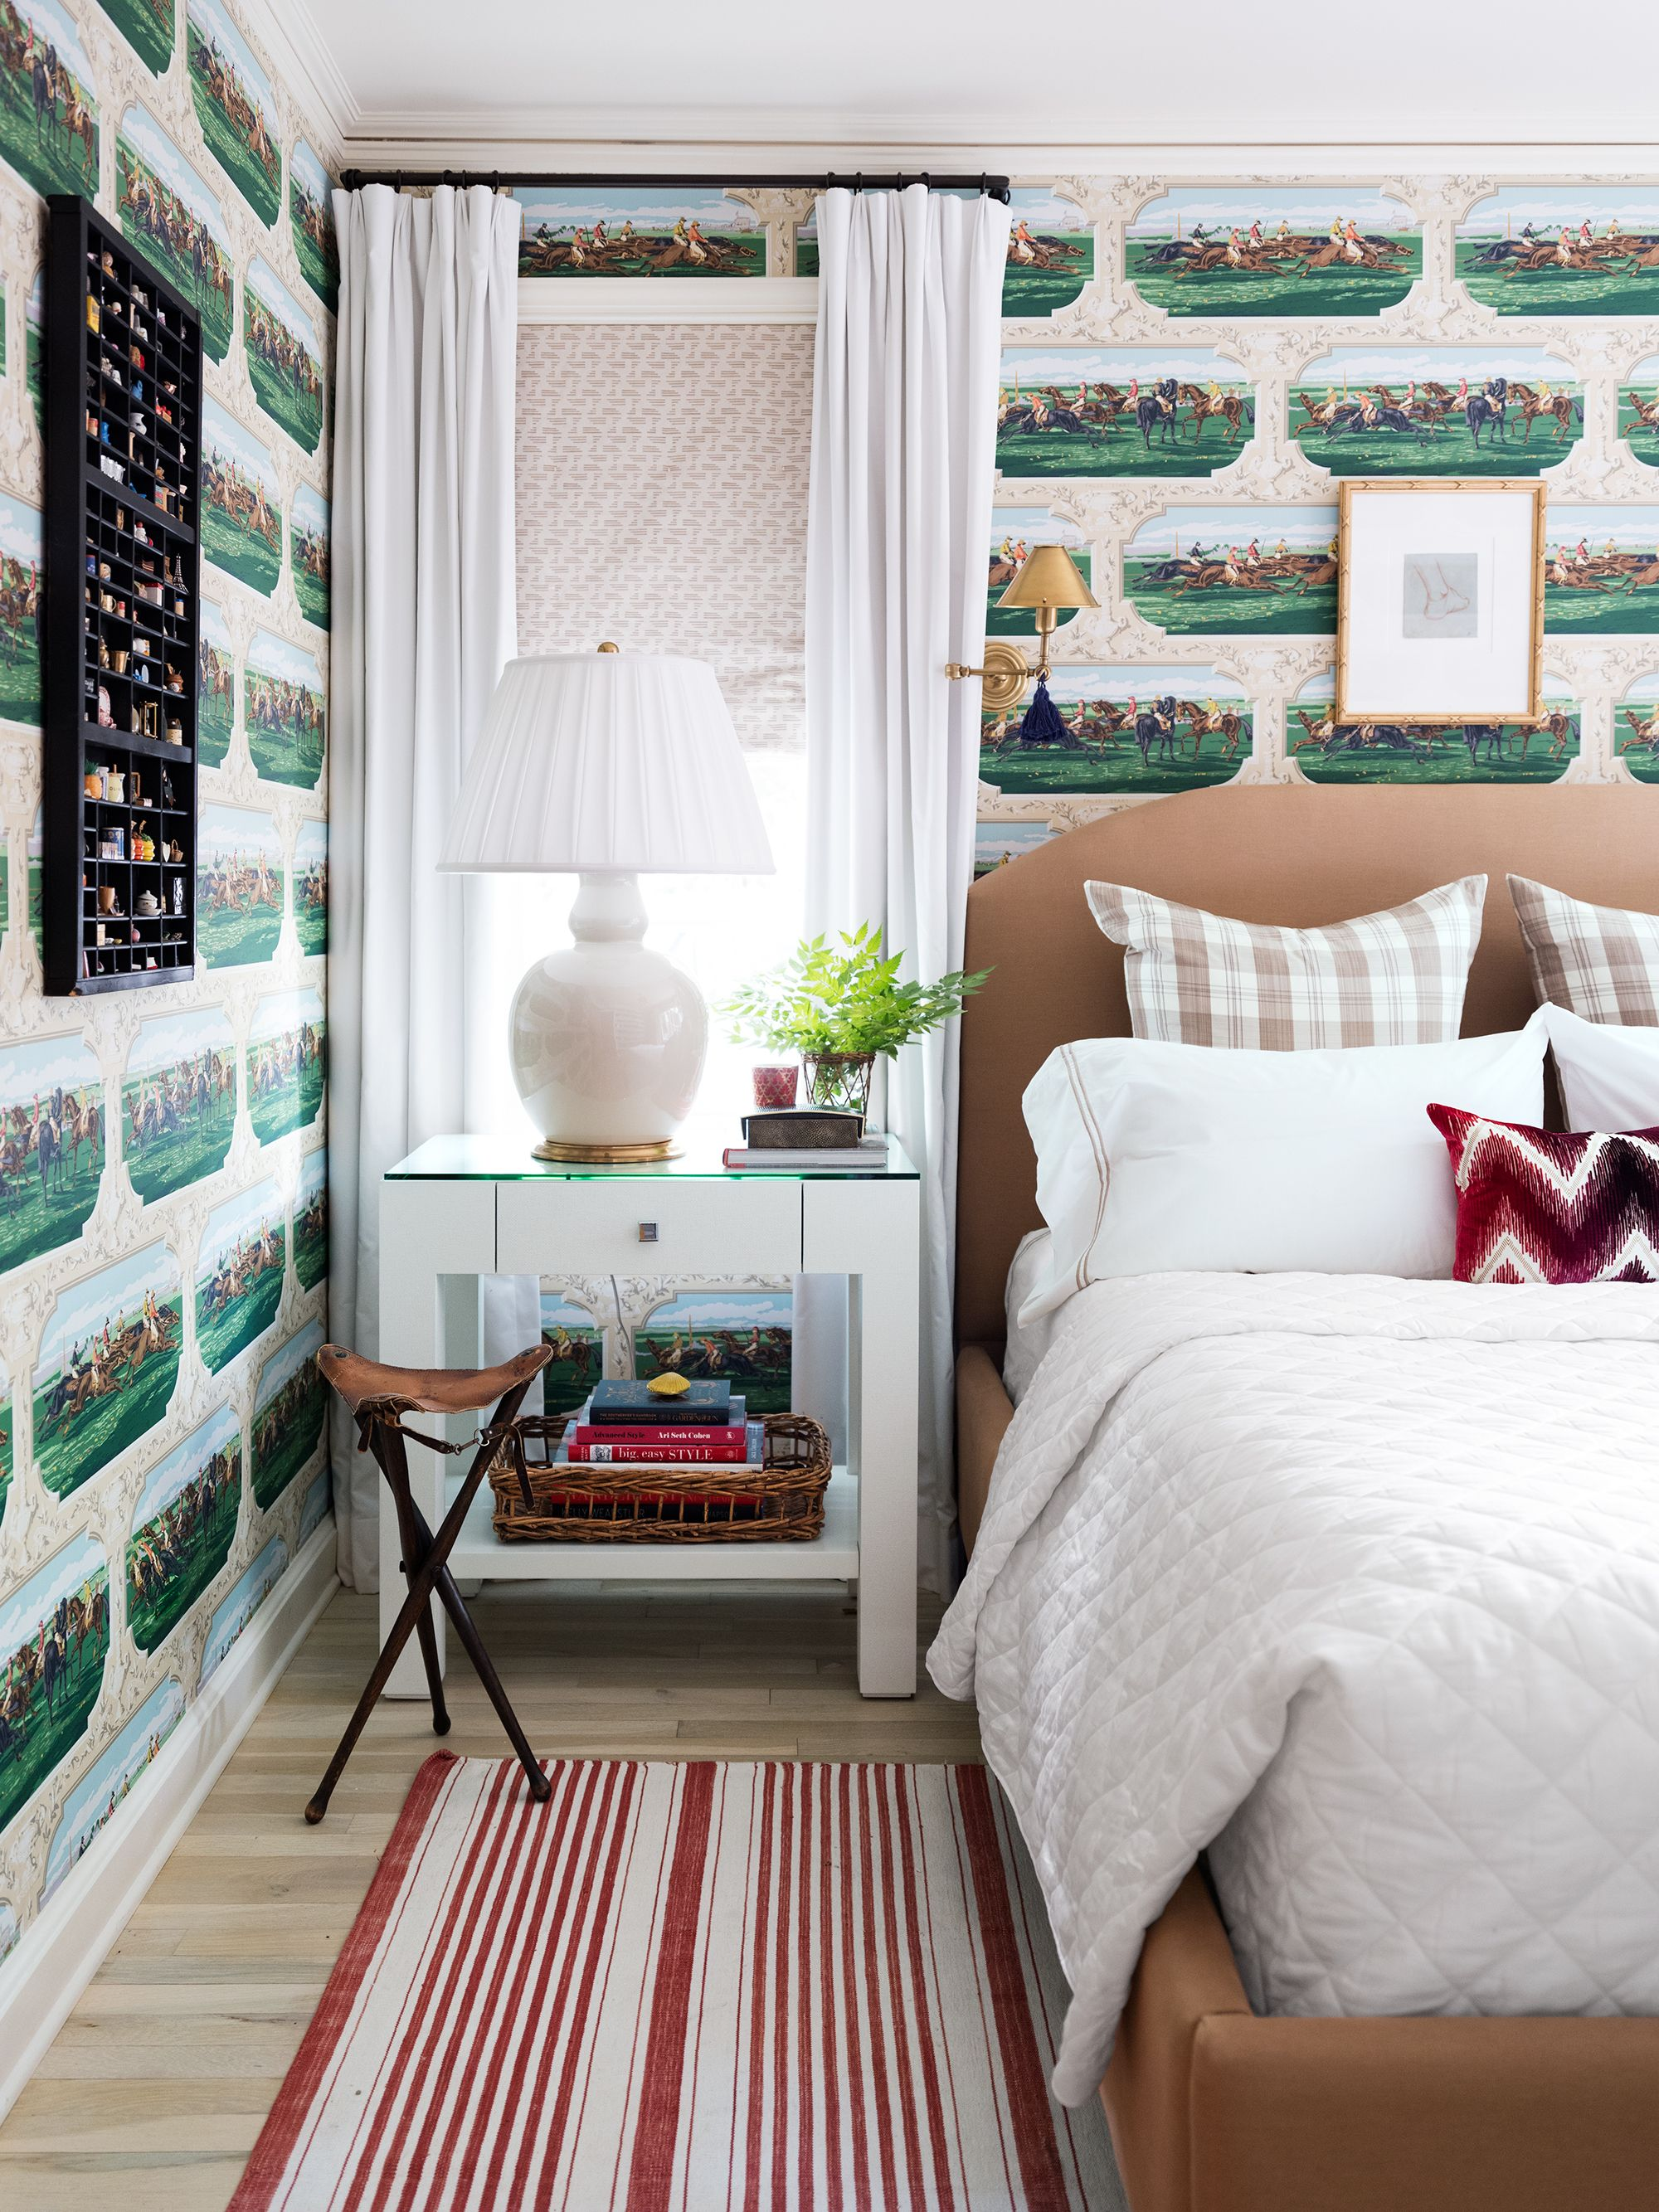 27 Bold Bedroom Wallpaper Ideas We Love - Timeless Bedroom ... on Bed Ideas For Small Rooms  id=38634